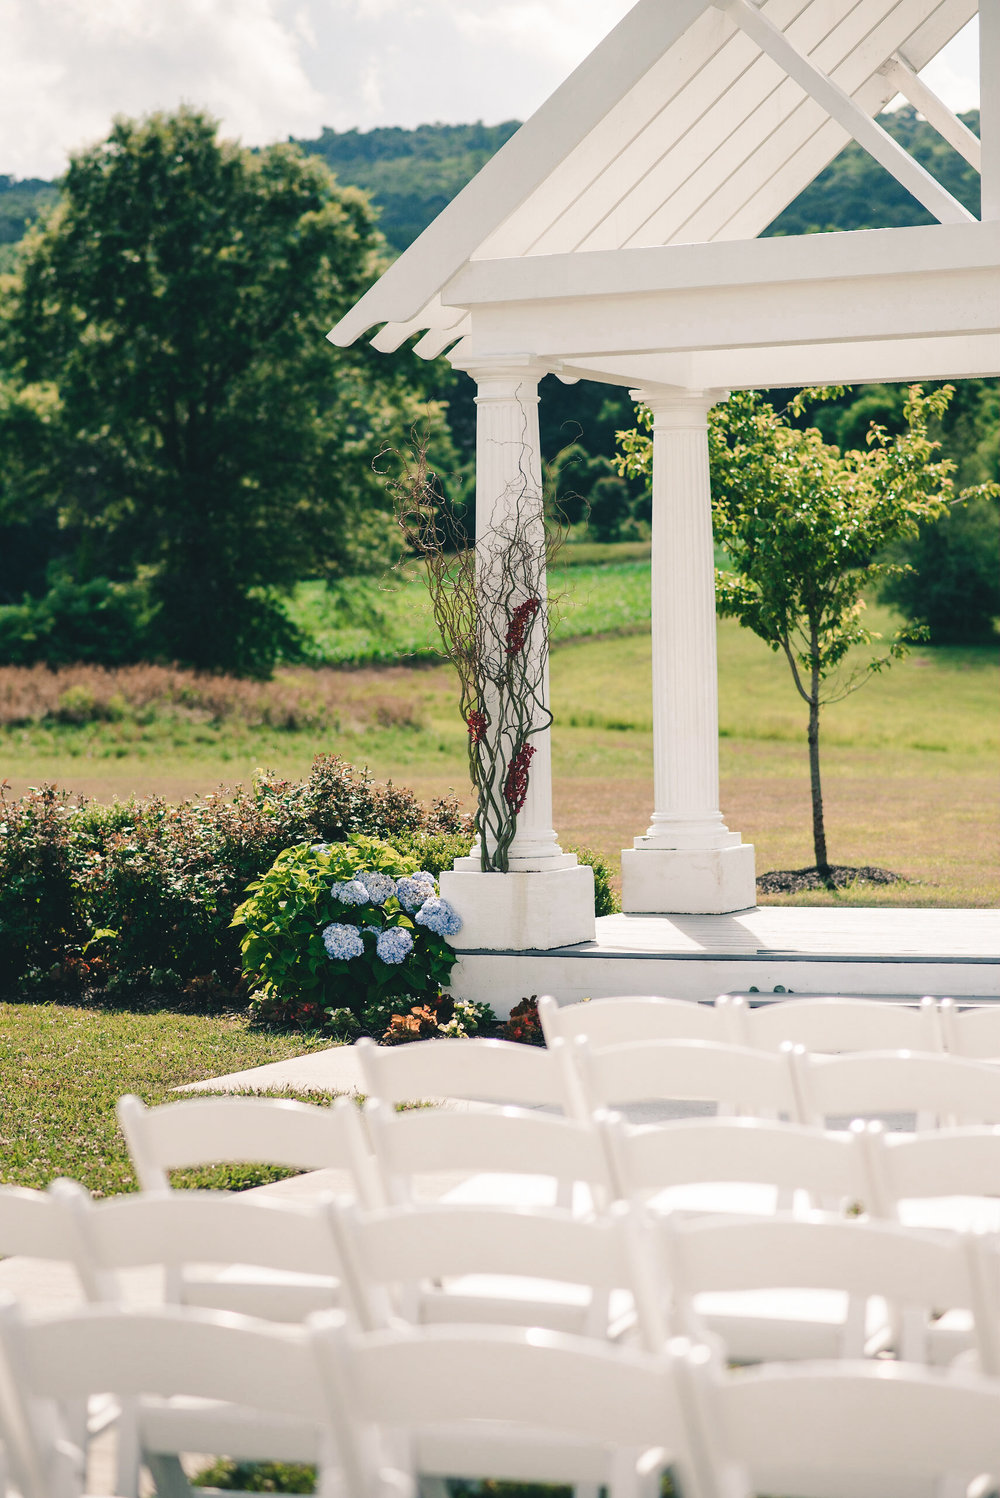 Ceremony space with pergola